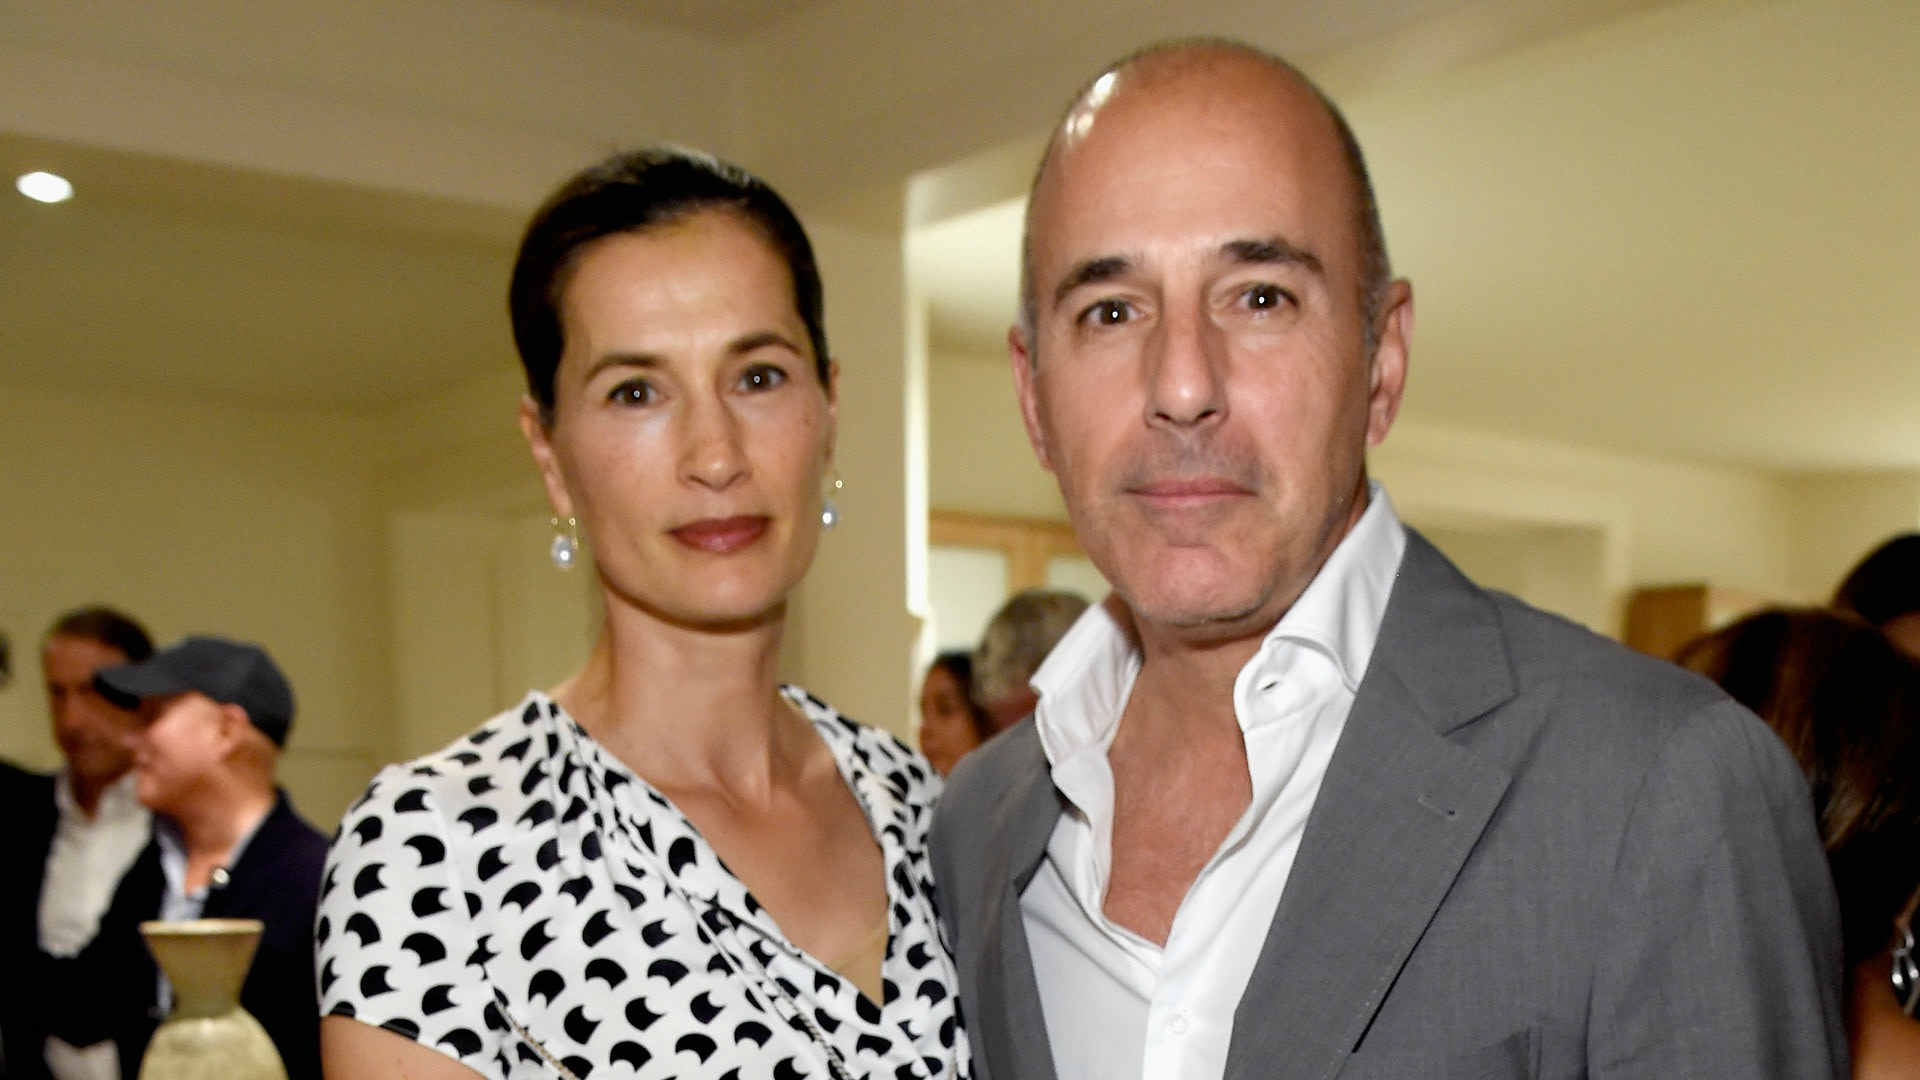 cleavage Paparazzi Annette Roque Lauer naked photo 2017